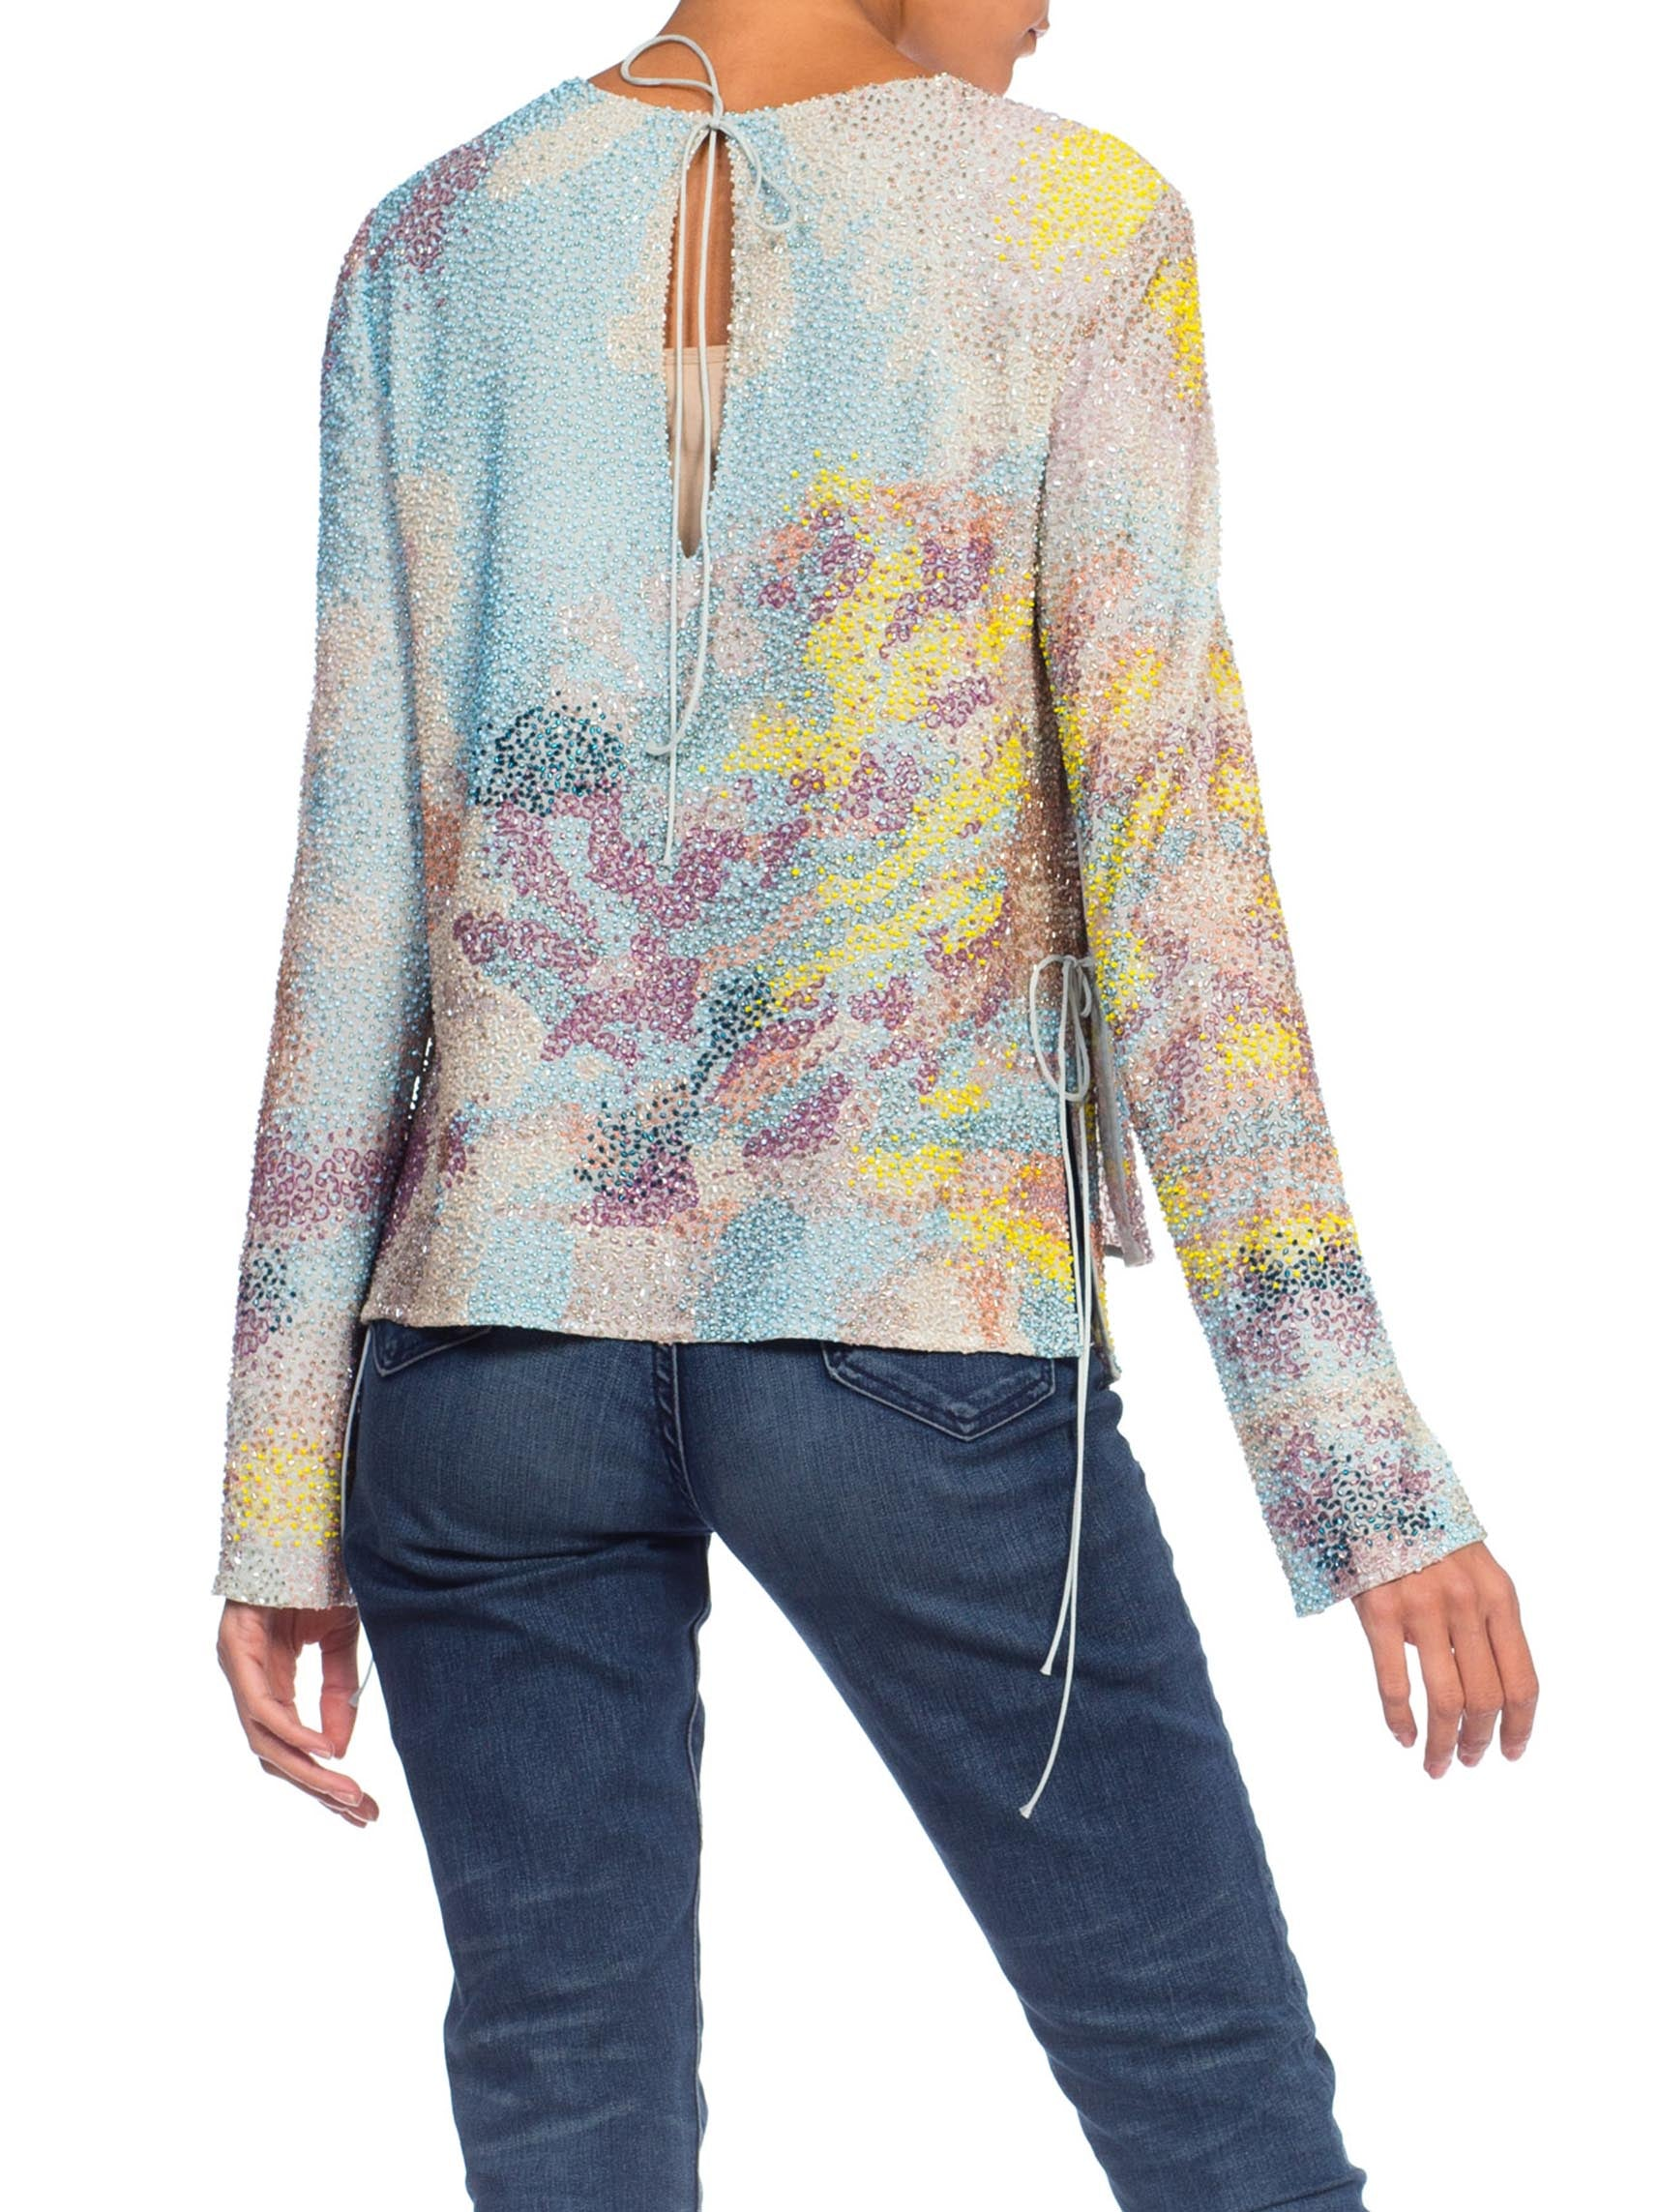 PUCCI Pastel Beaded Top